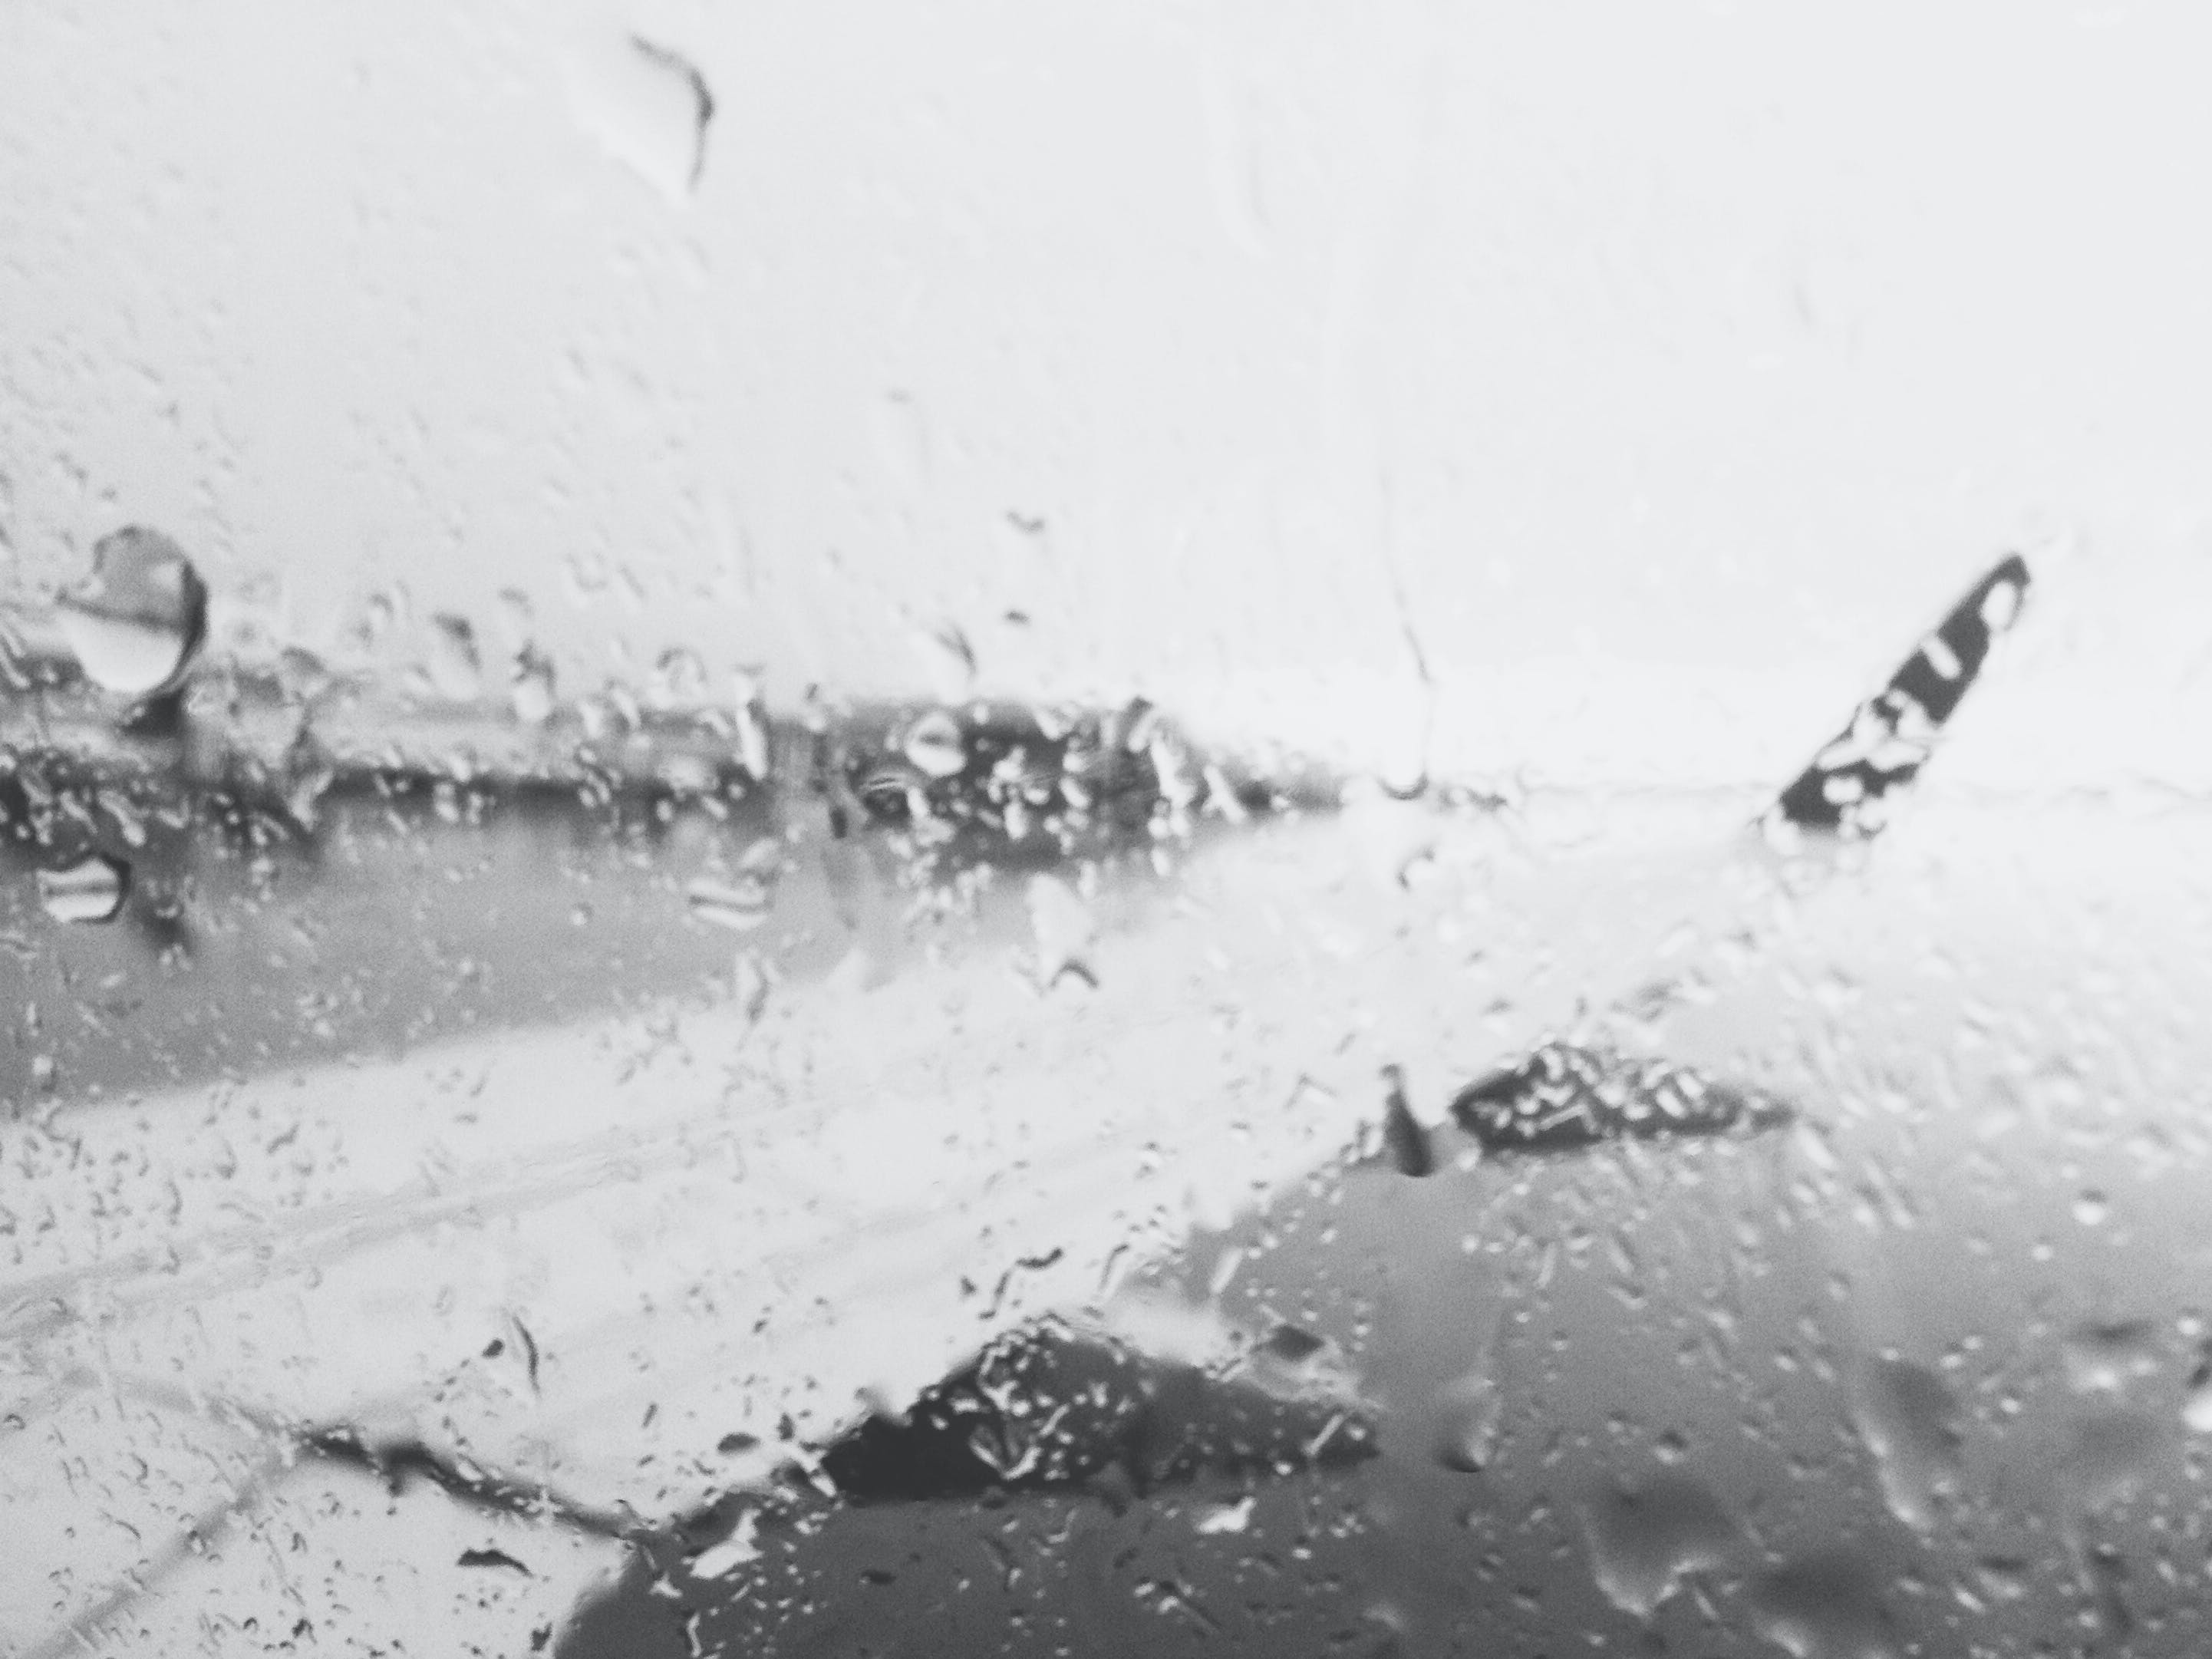 Free stock photo of black-and-white, traveling, travelling, rainy